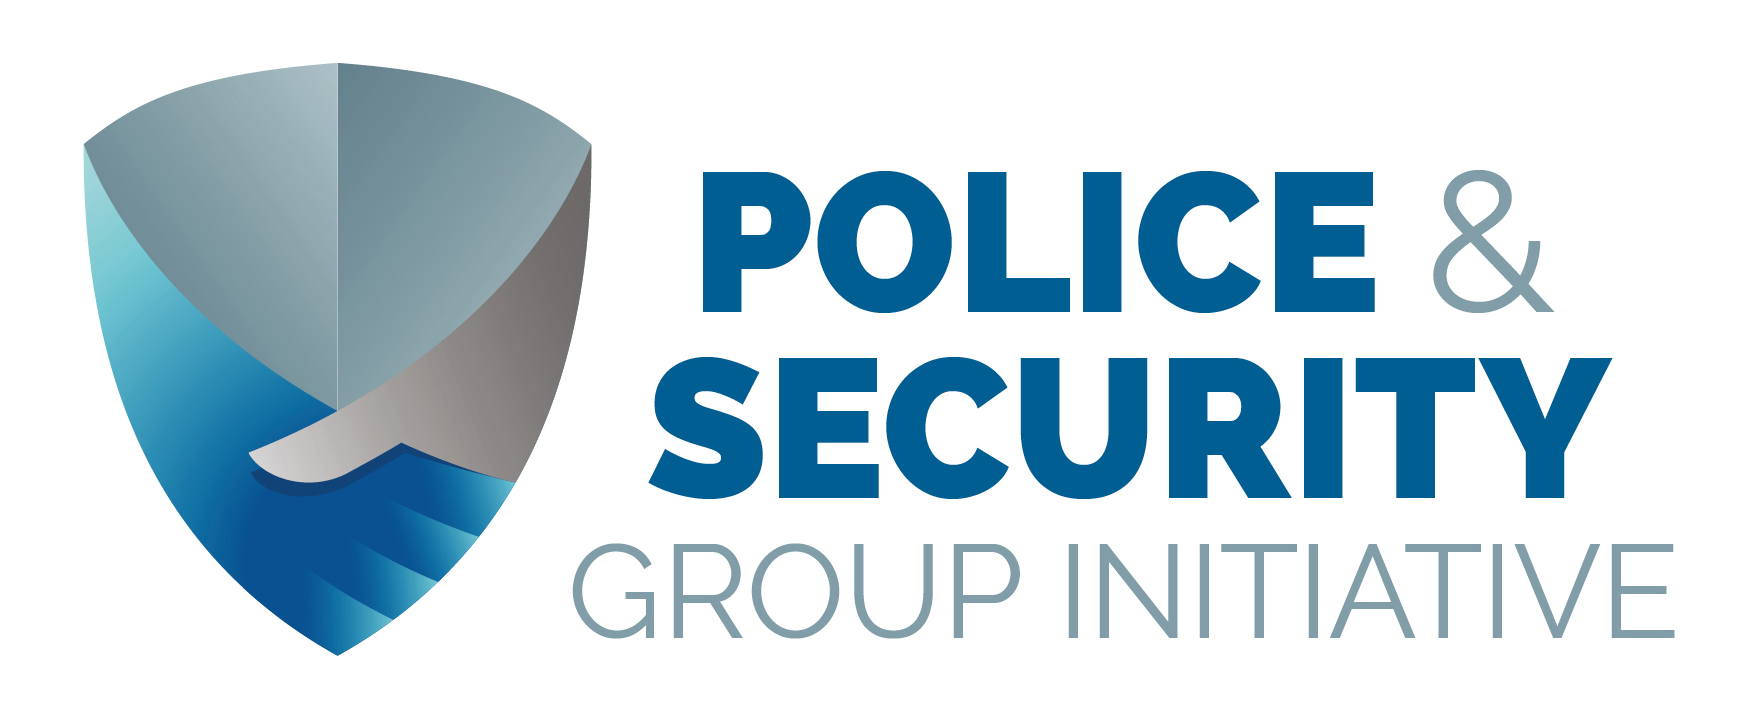 Police & Security Group